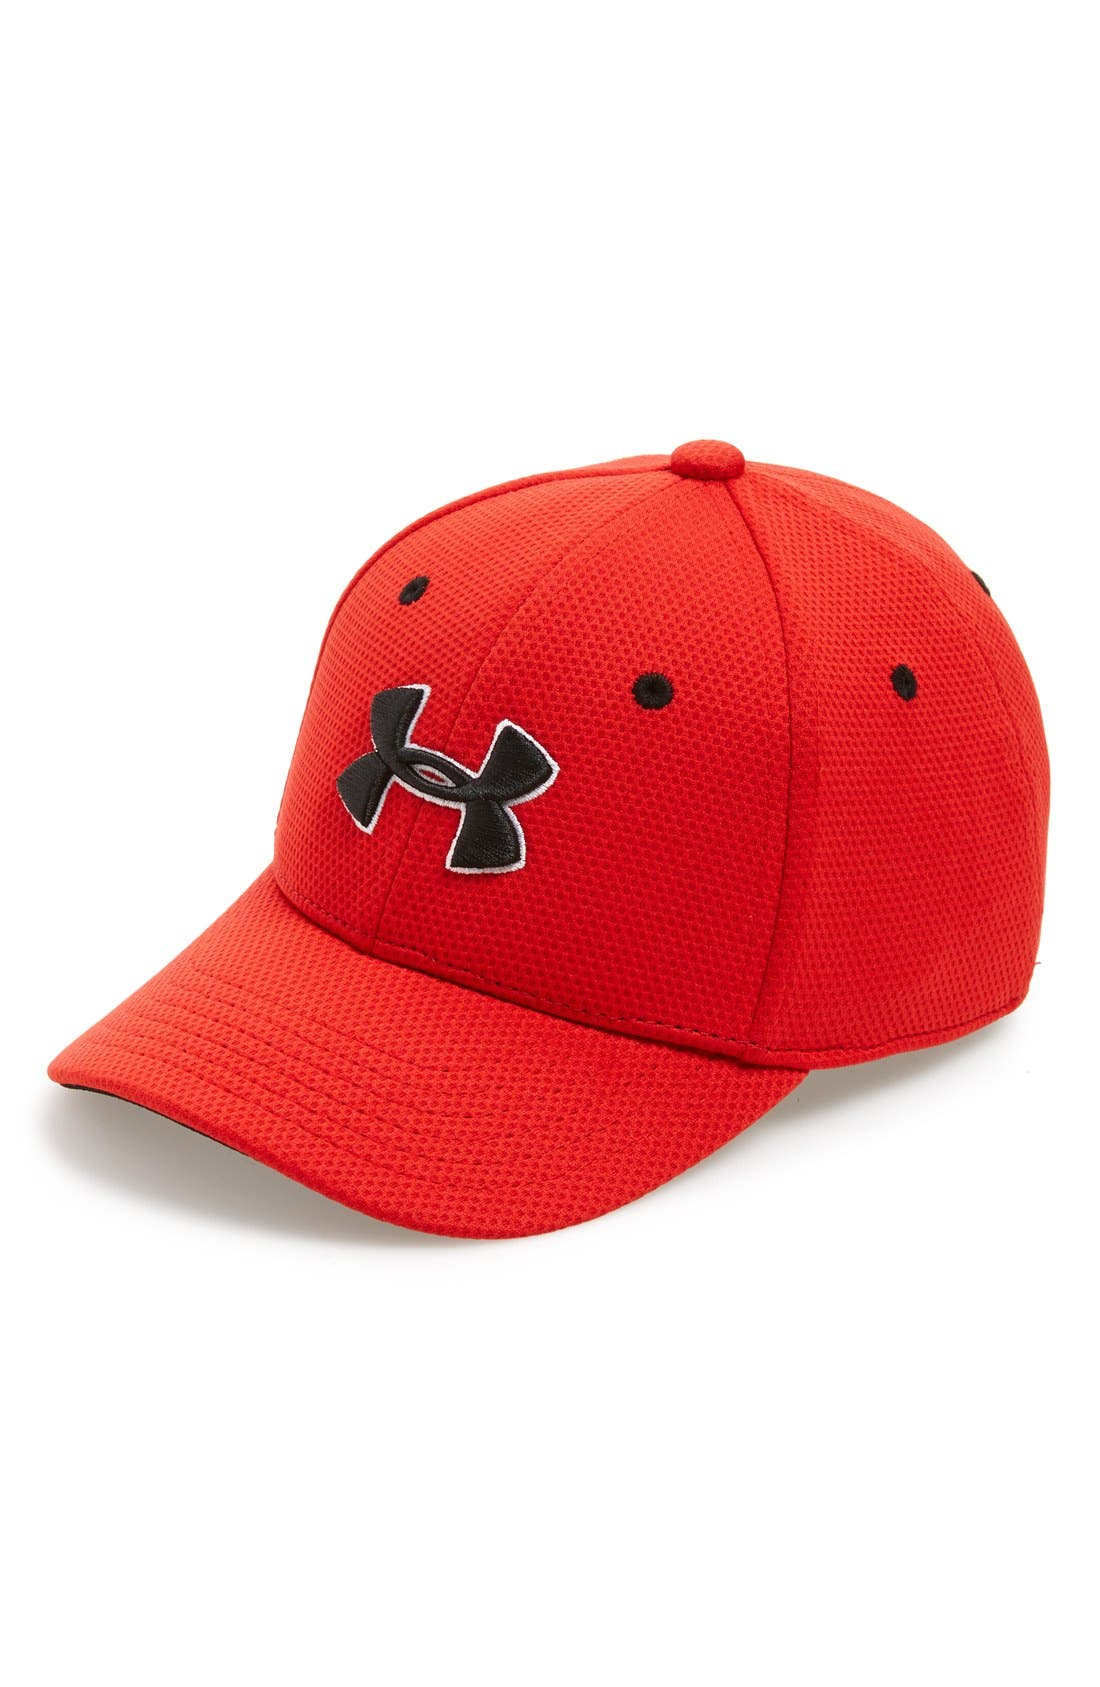 Under Armour 'Blitzing 2.0' Stretch Fit Baseball Cap (Big Boys)